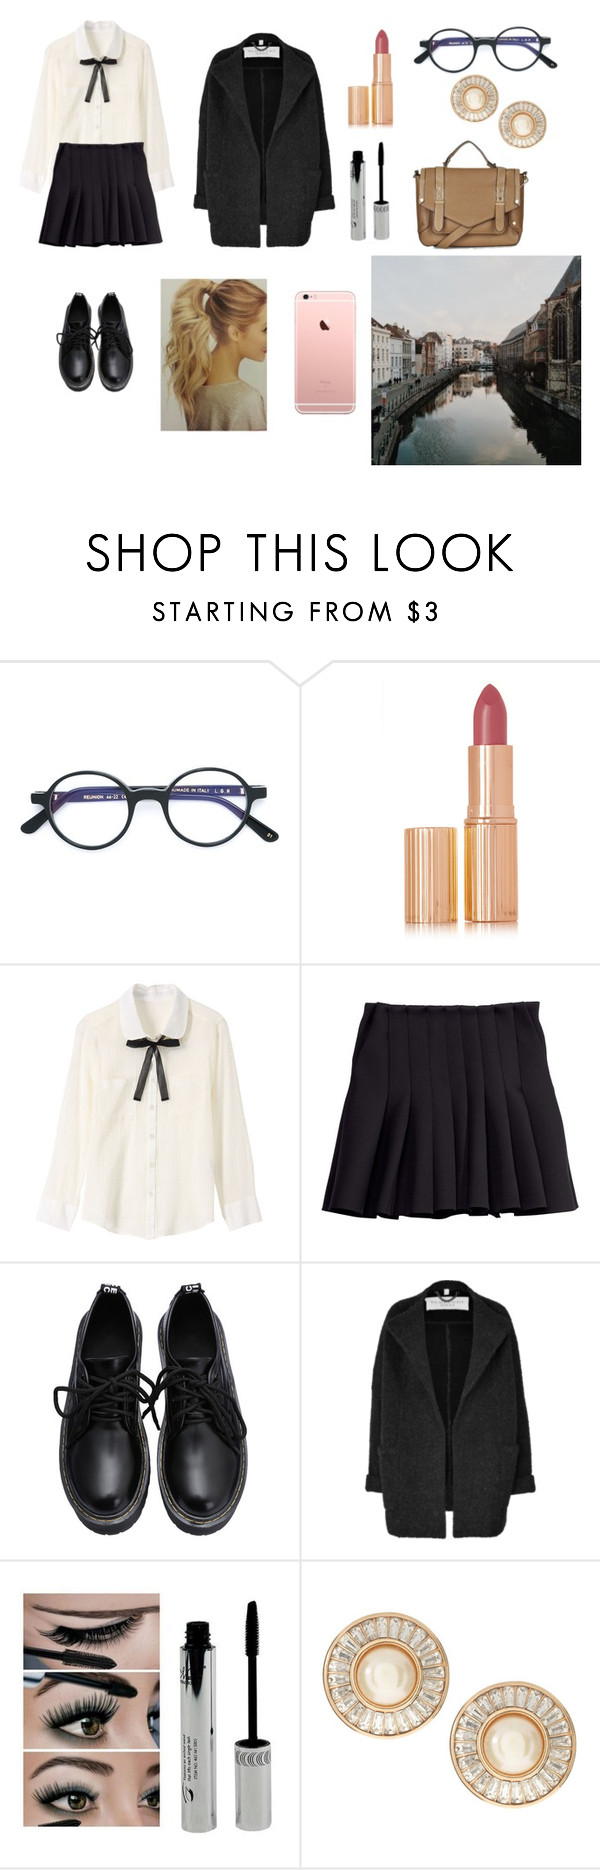 """Untitled #111"" by margaridadelrey117 ❤ liked on Polyvore featuring beauty, L.G.R, Charlotte Tilbury, H&M, Burberry, Christian Dior and Topshop"